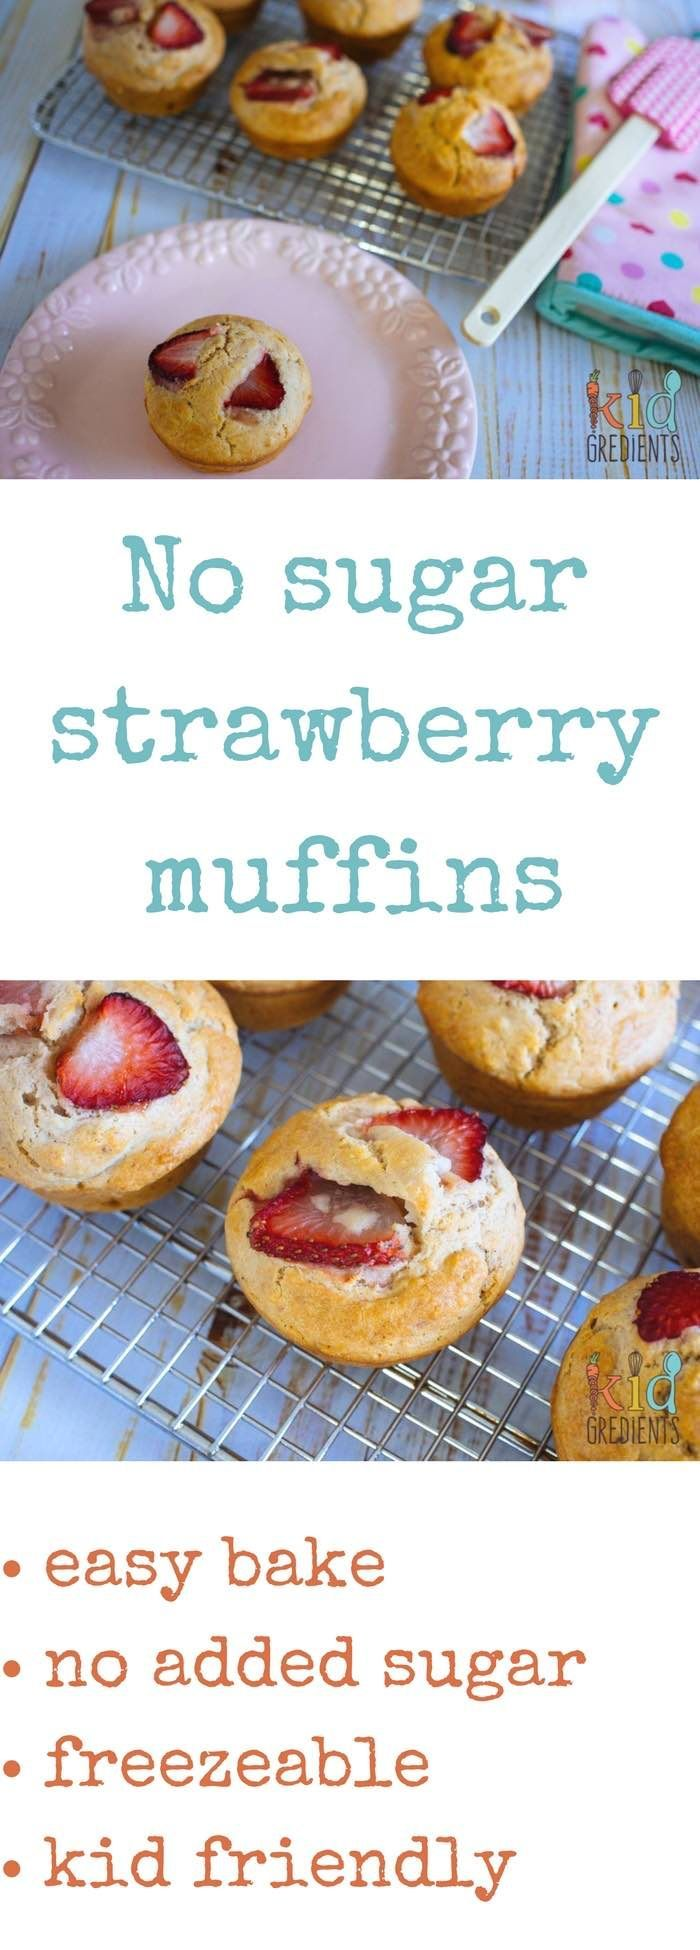 No sugar strawberry muffins.  Perfect in the lunchbox and great for afternoon tea! Freezer friendly and easy to bake this recipe is a kid pleaser! via @kidgredients